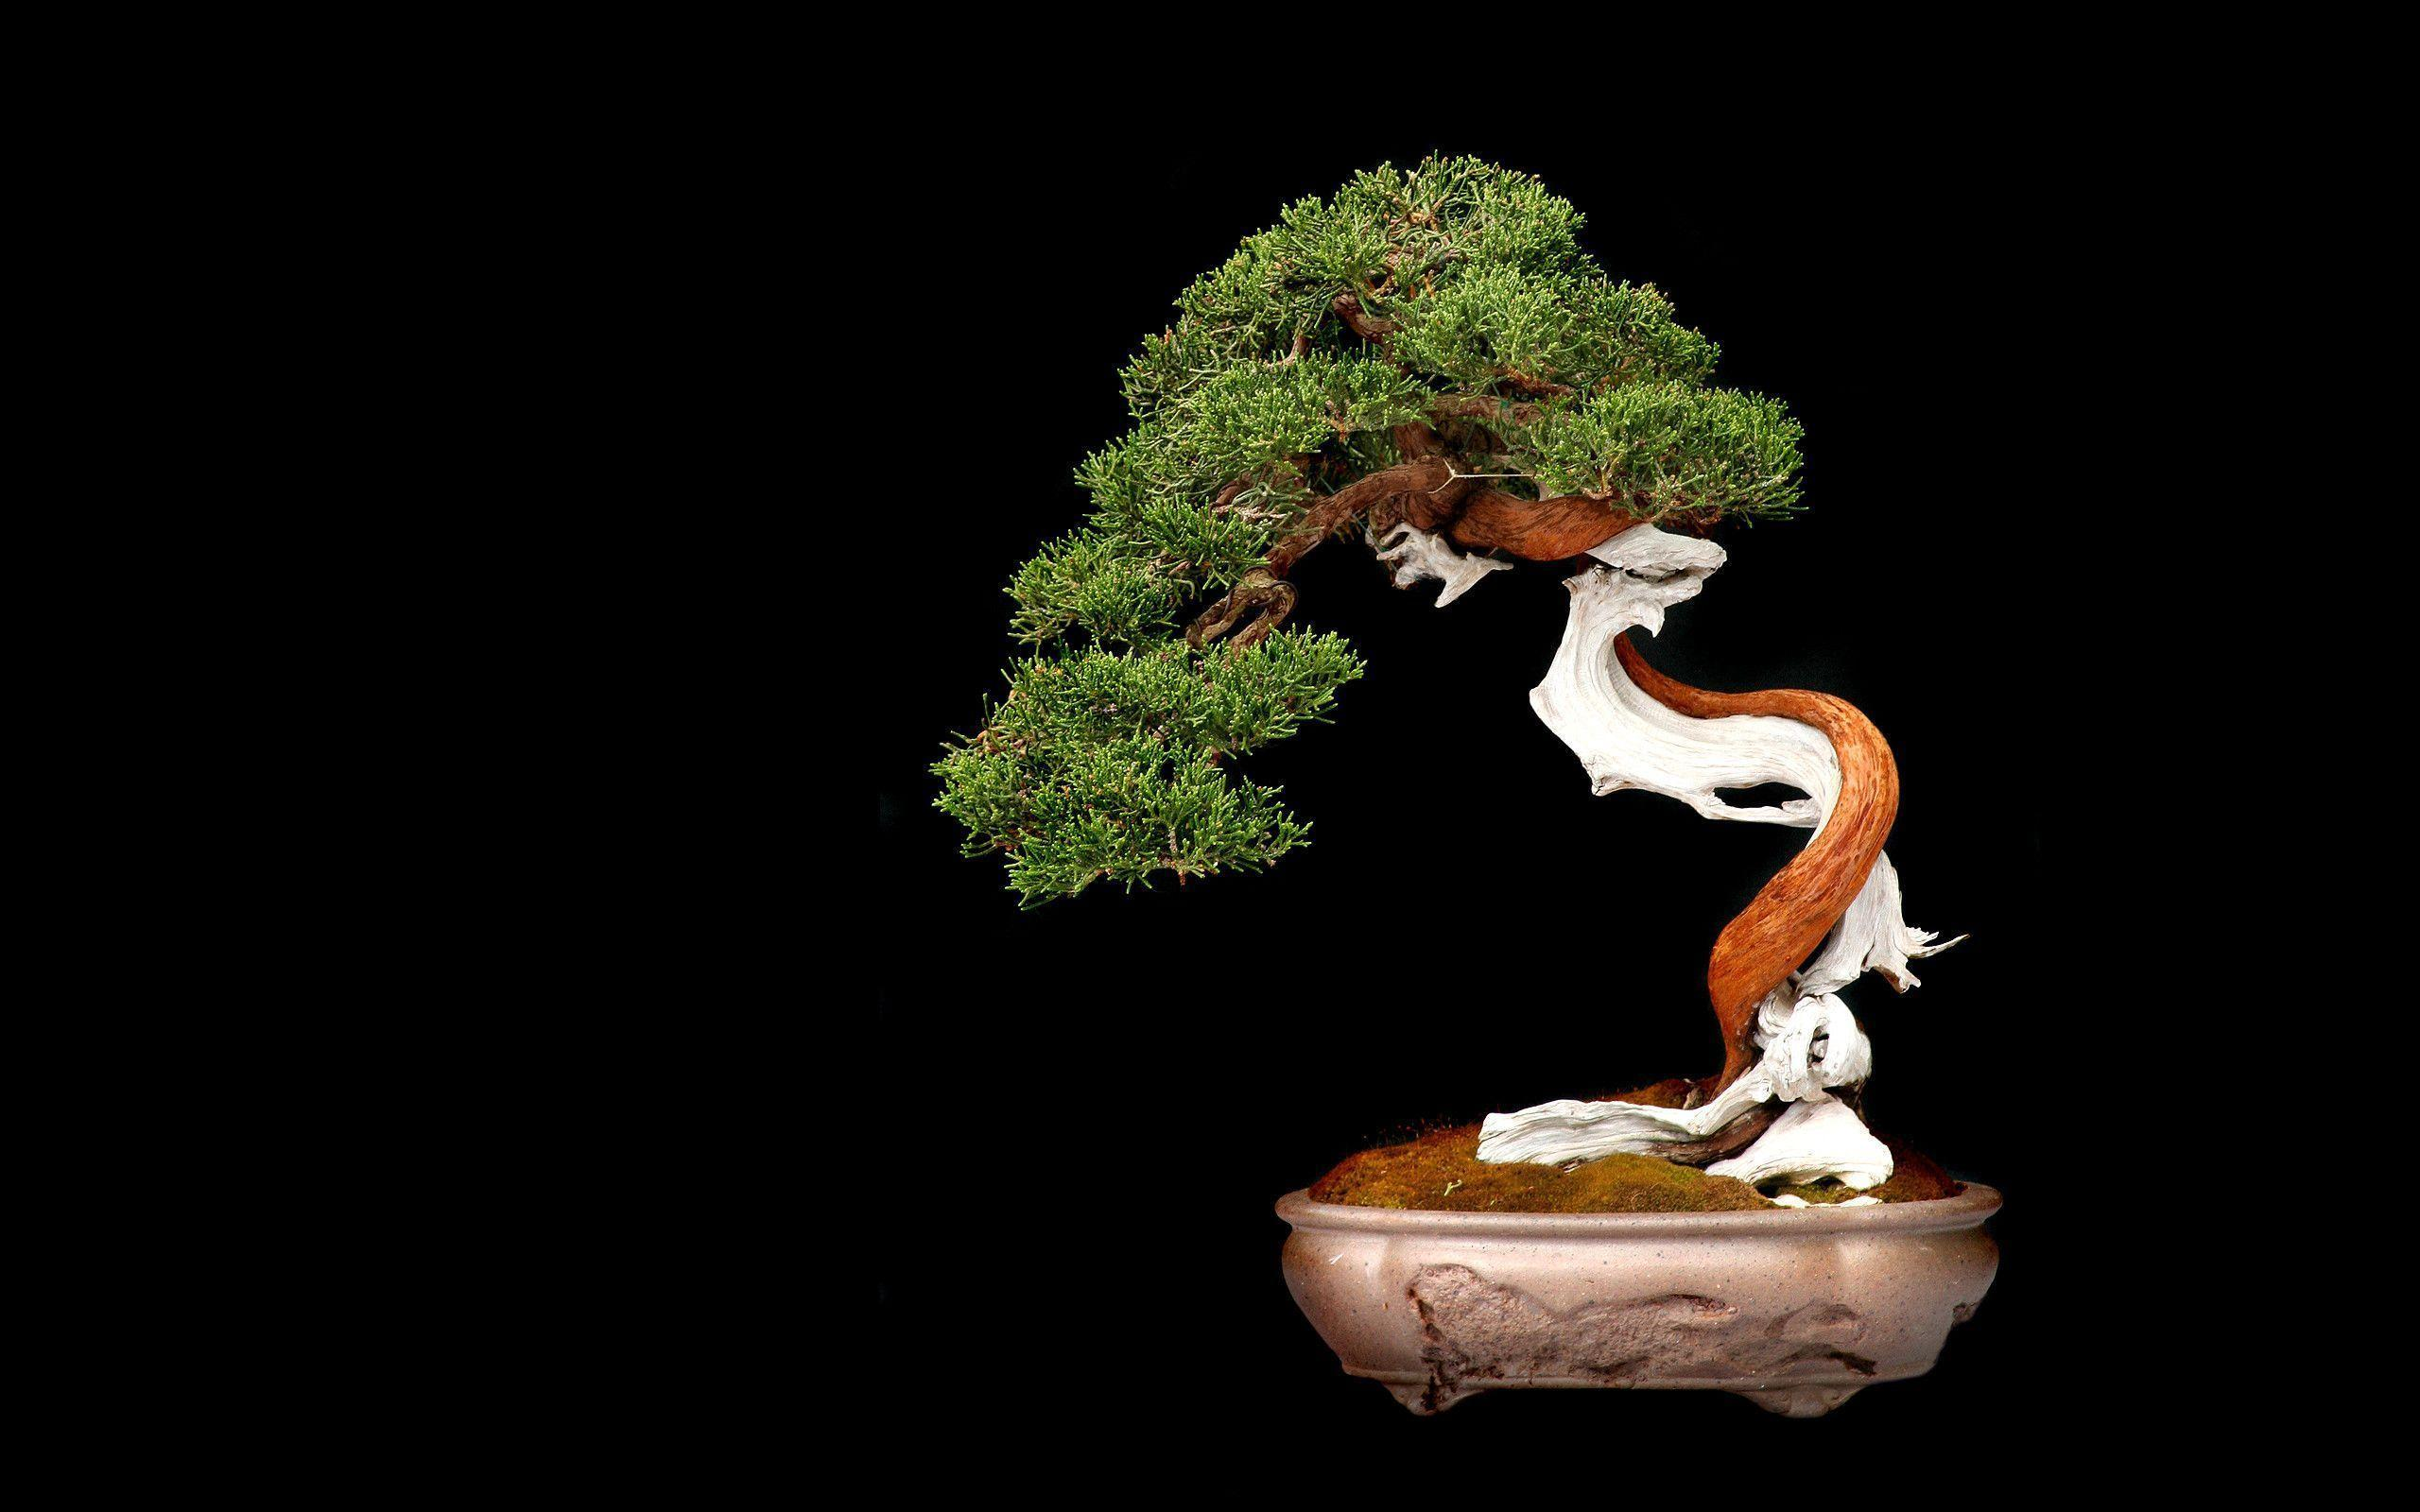 Bonsai tree-wallpaper-2560x1600 wallpaper | 2560x1600 | 231953 ...